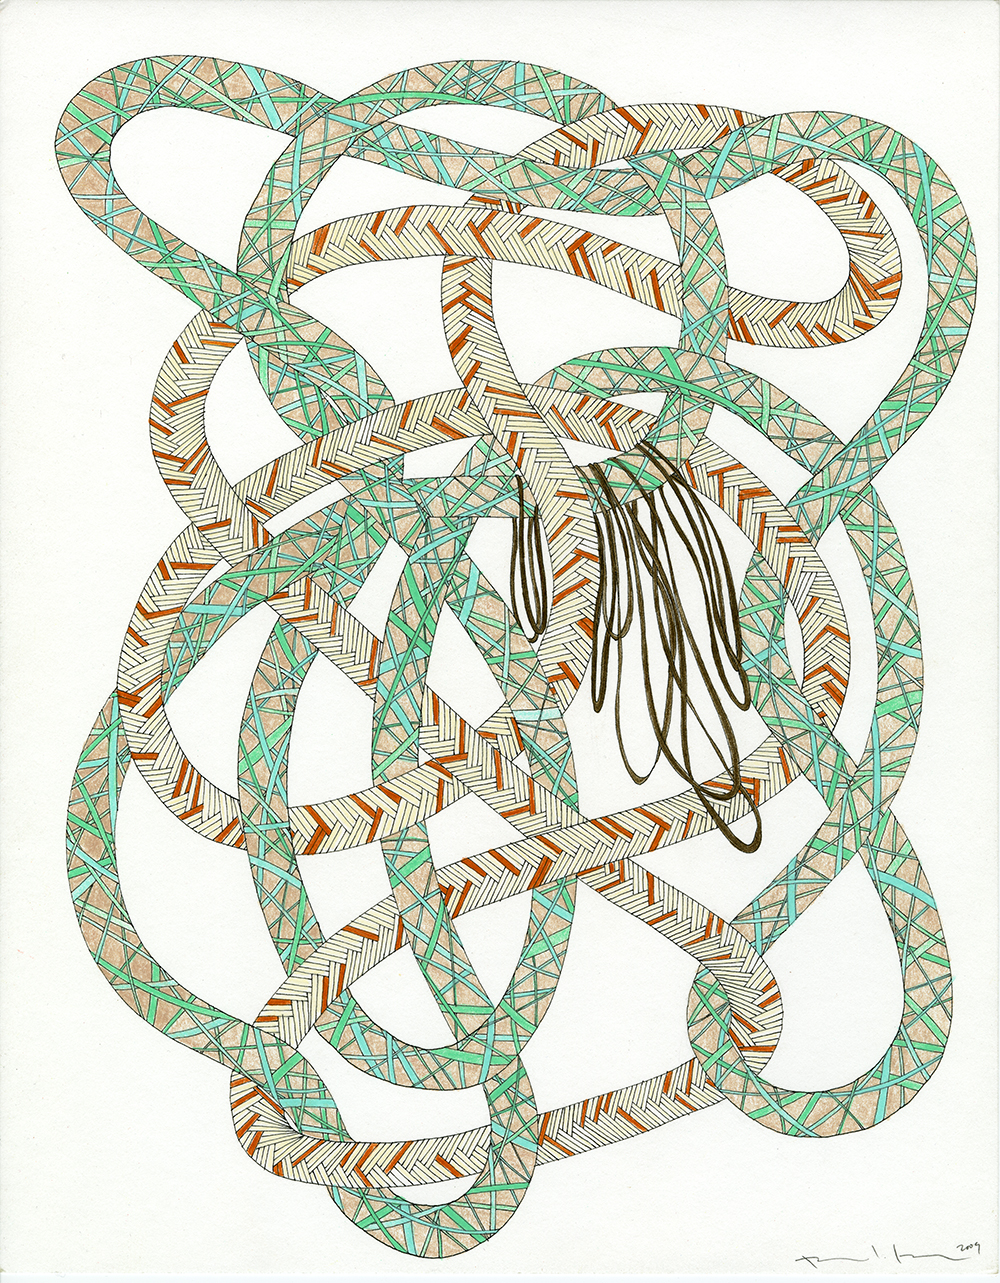 Ropes in Aqua, Rust, & Brown_11x14_2009_CC.jpg